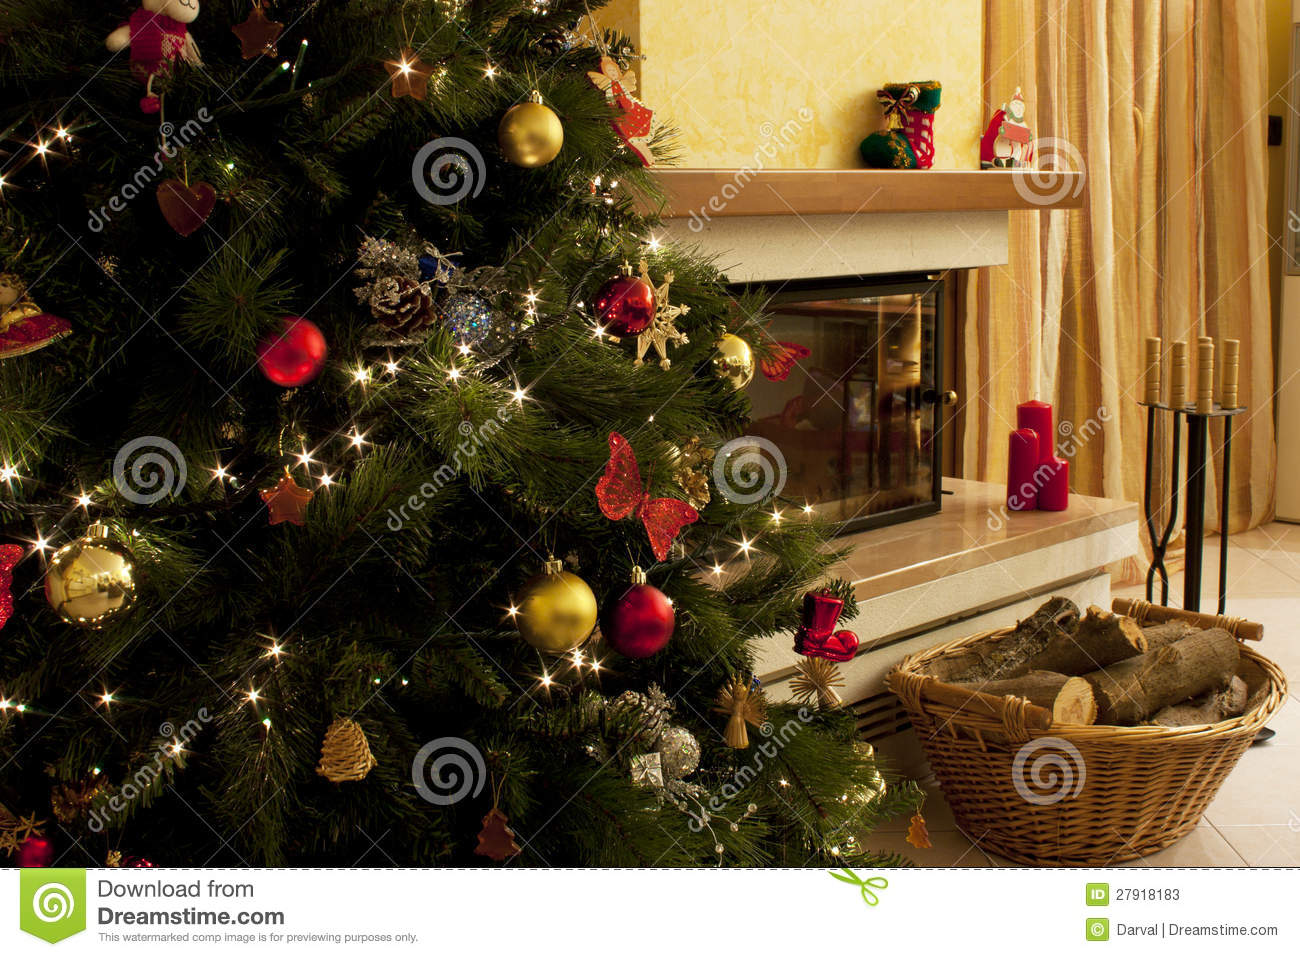 download christmas decorations stock image image of jesus december 27918183 - Jesus Christmas Decorations